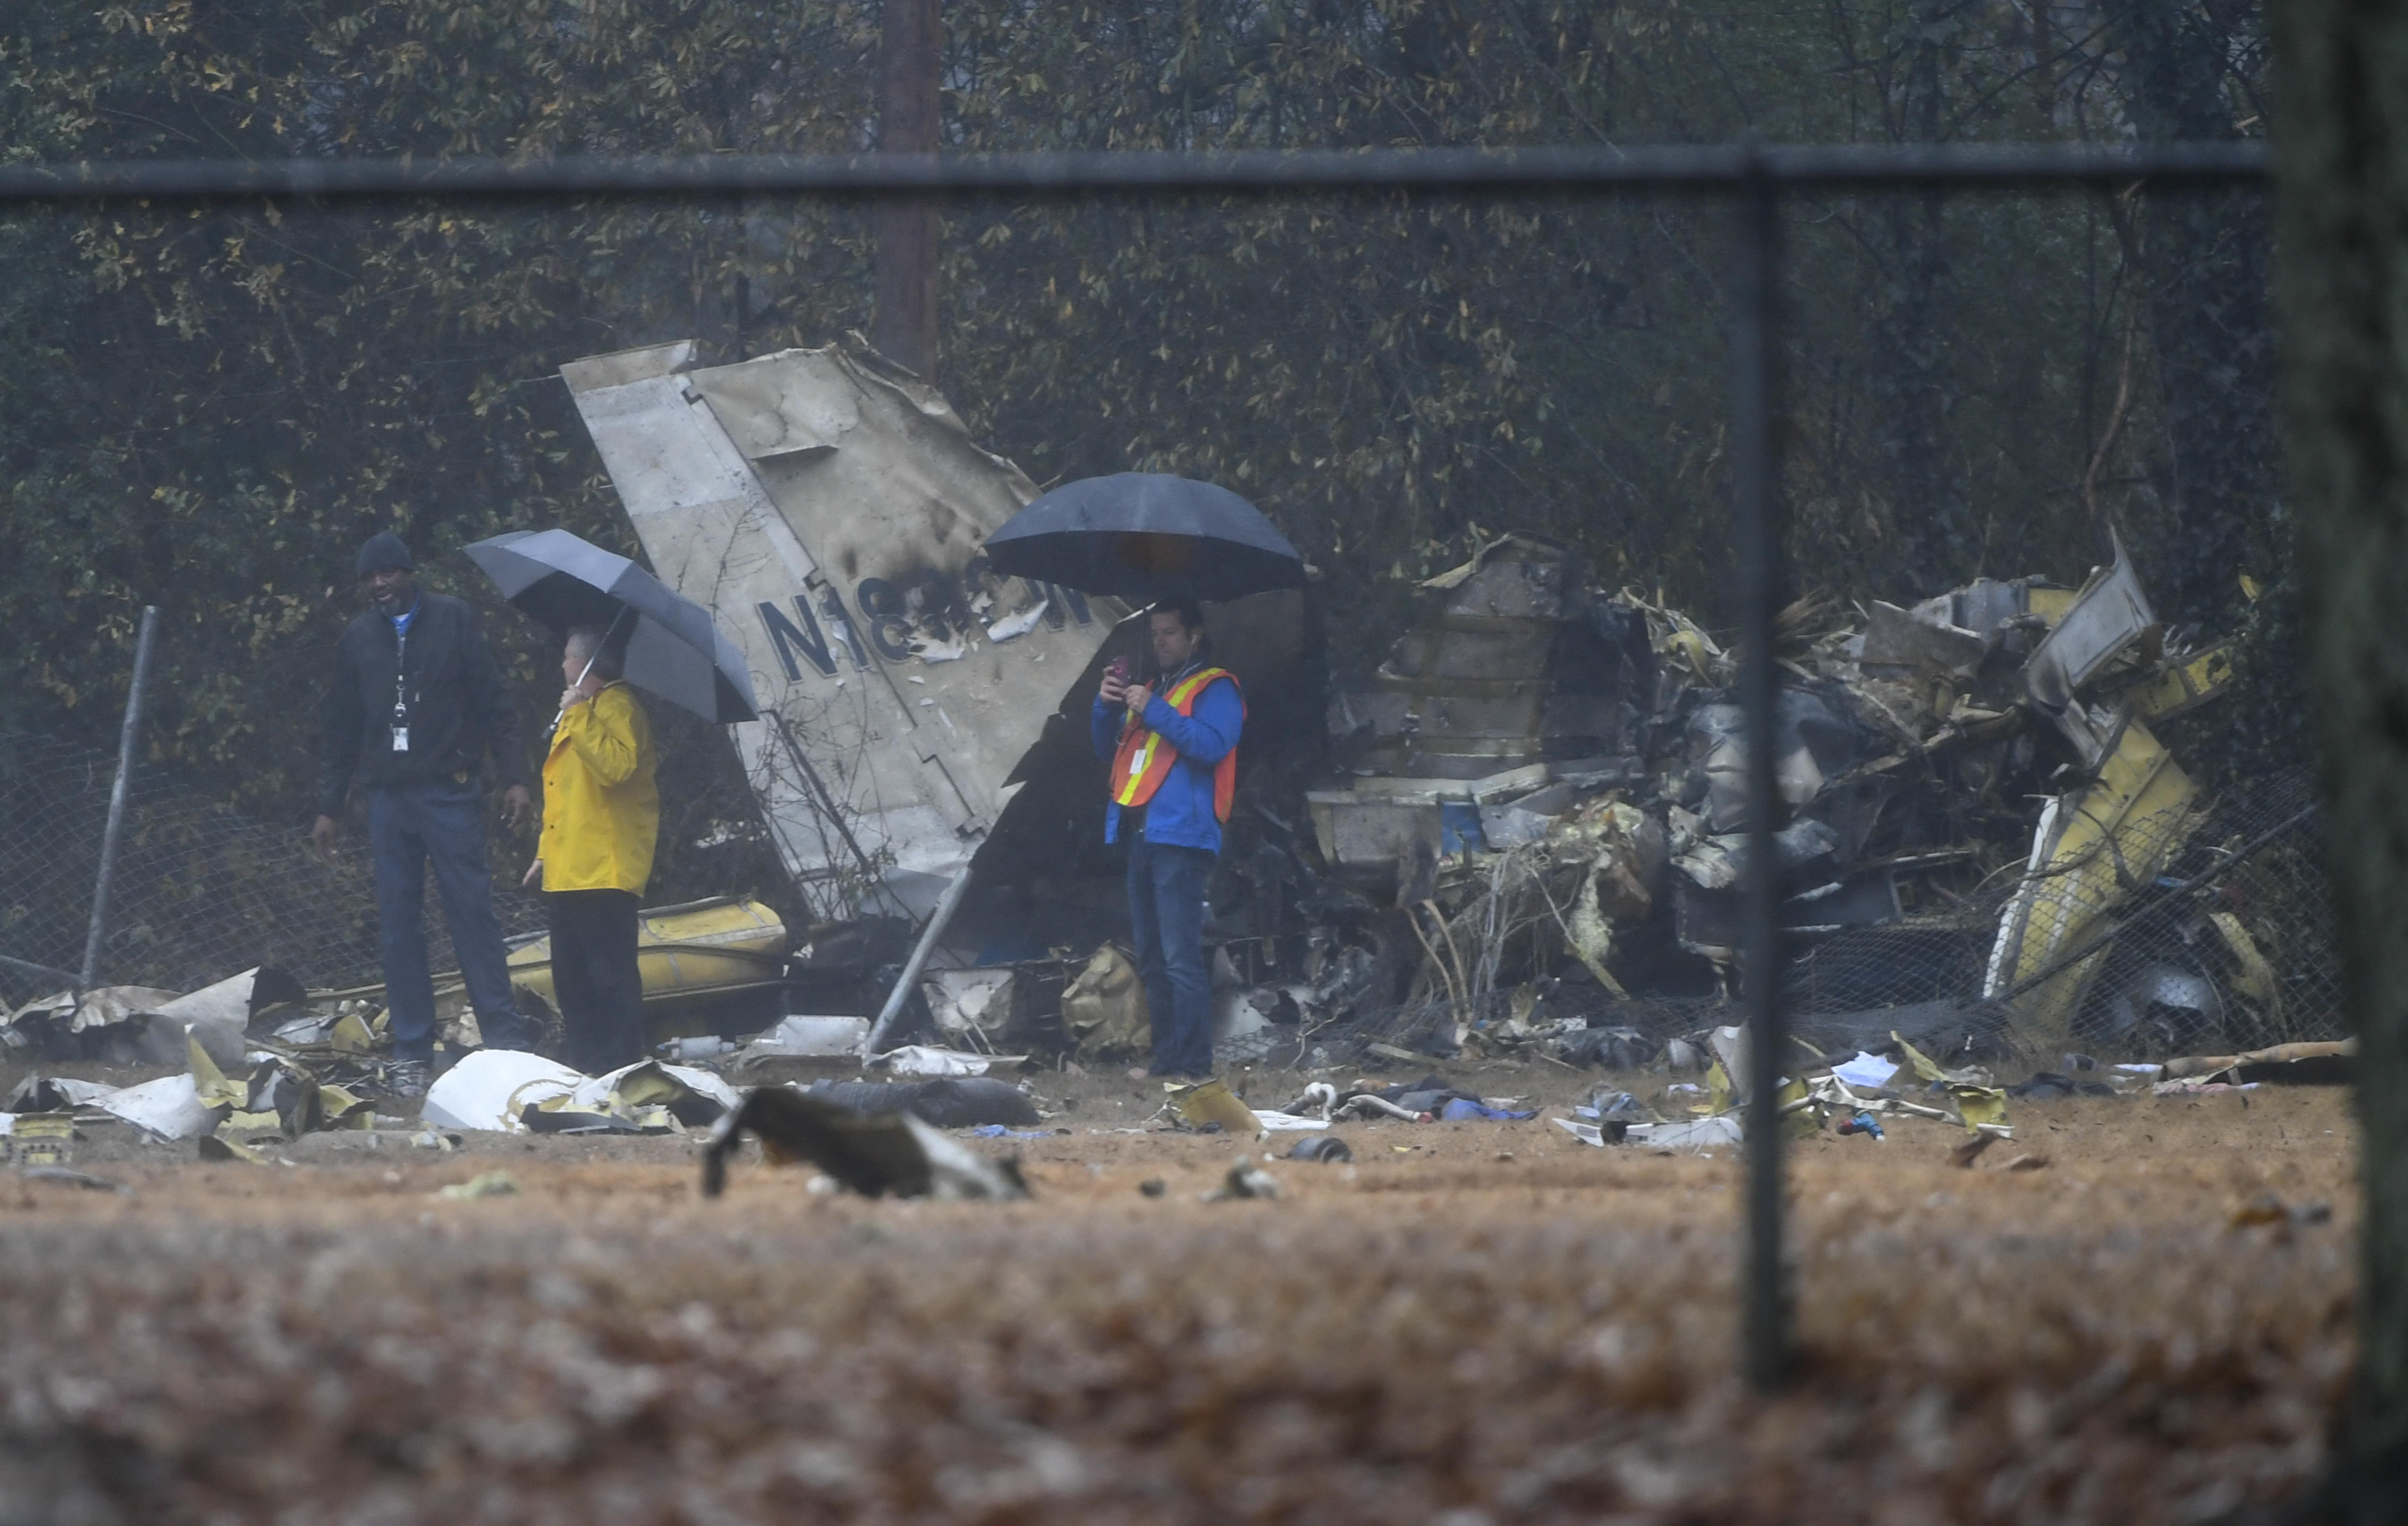 business jet crashes into atlanta football field killing prominent ceo and 3 others asian bookie